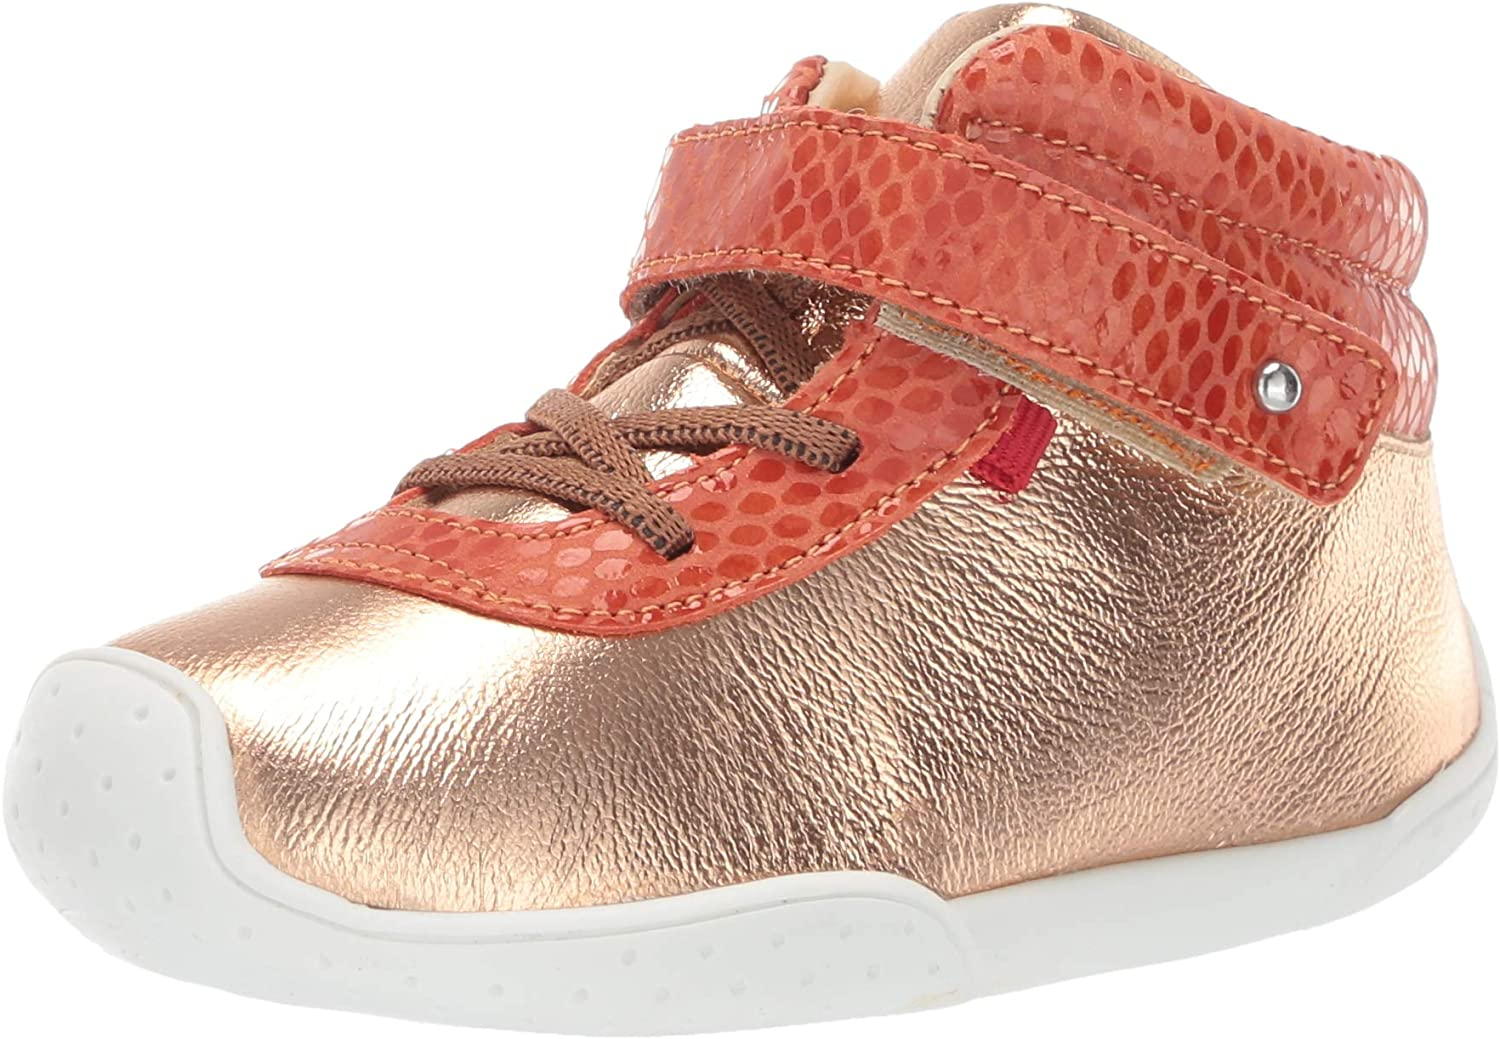 Rose Gold//Coral Snake Marc Joseph New York Toddlers Baby Boys//Girls Leather Double High Top Velcro Strap Loafer 5 M US